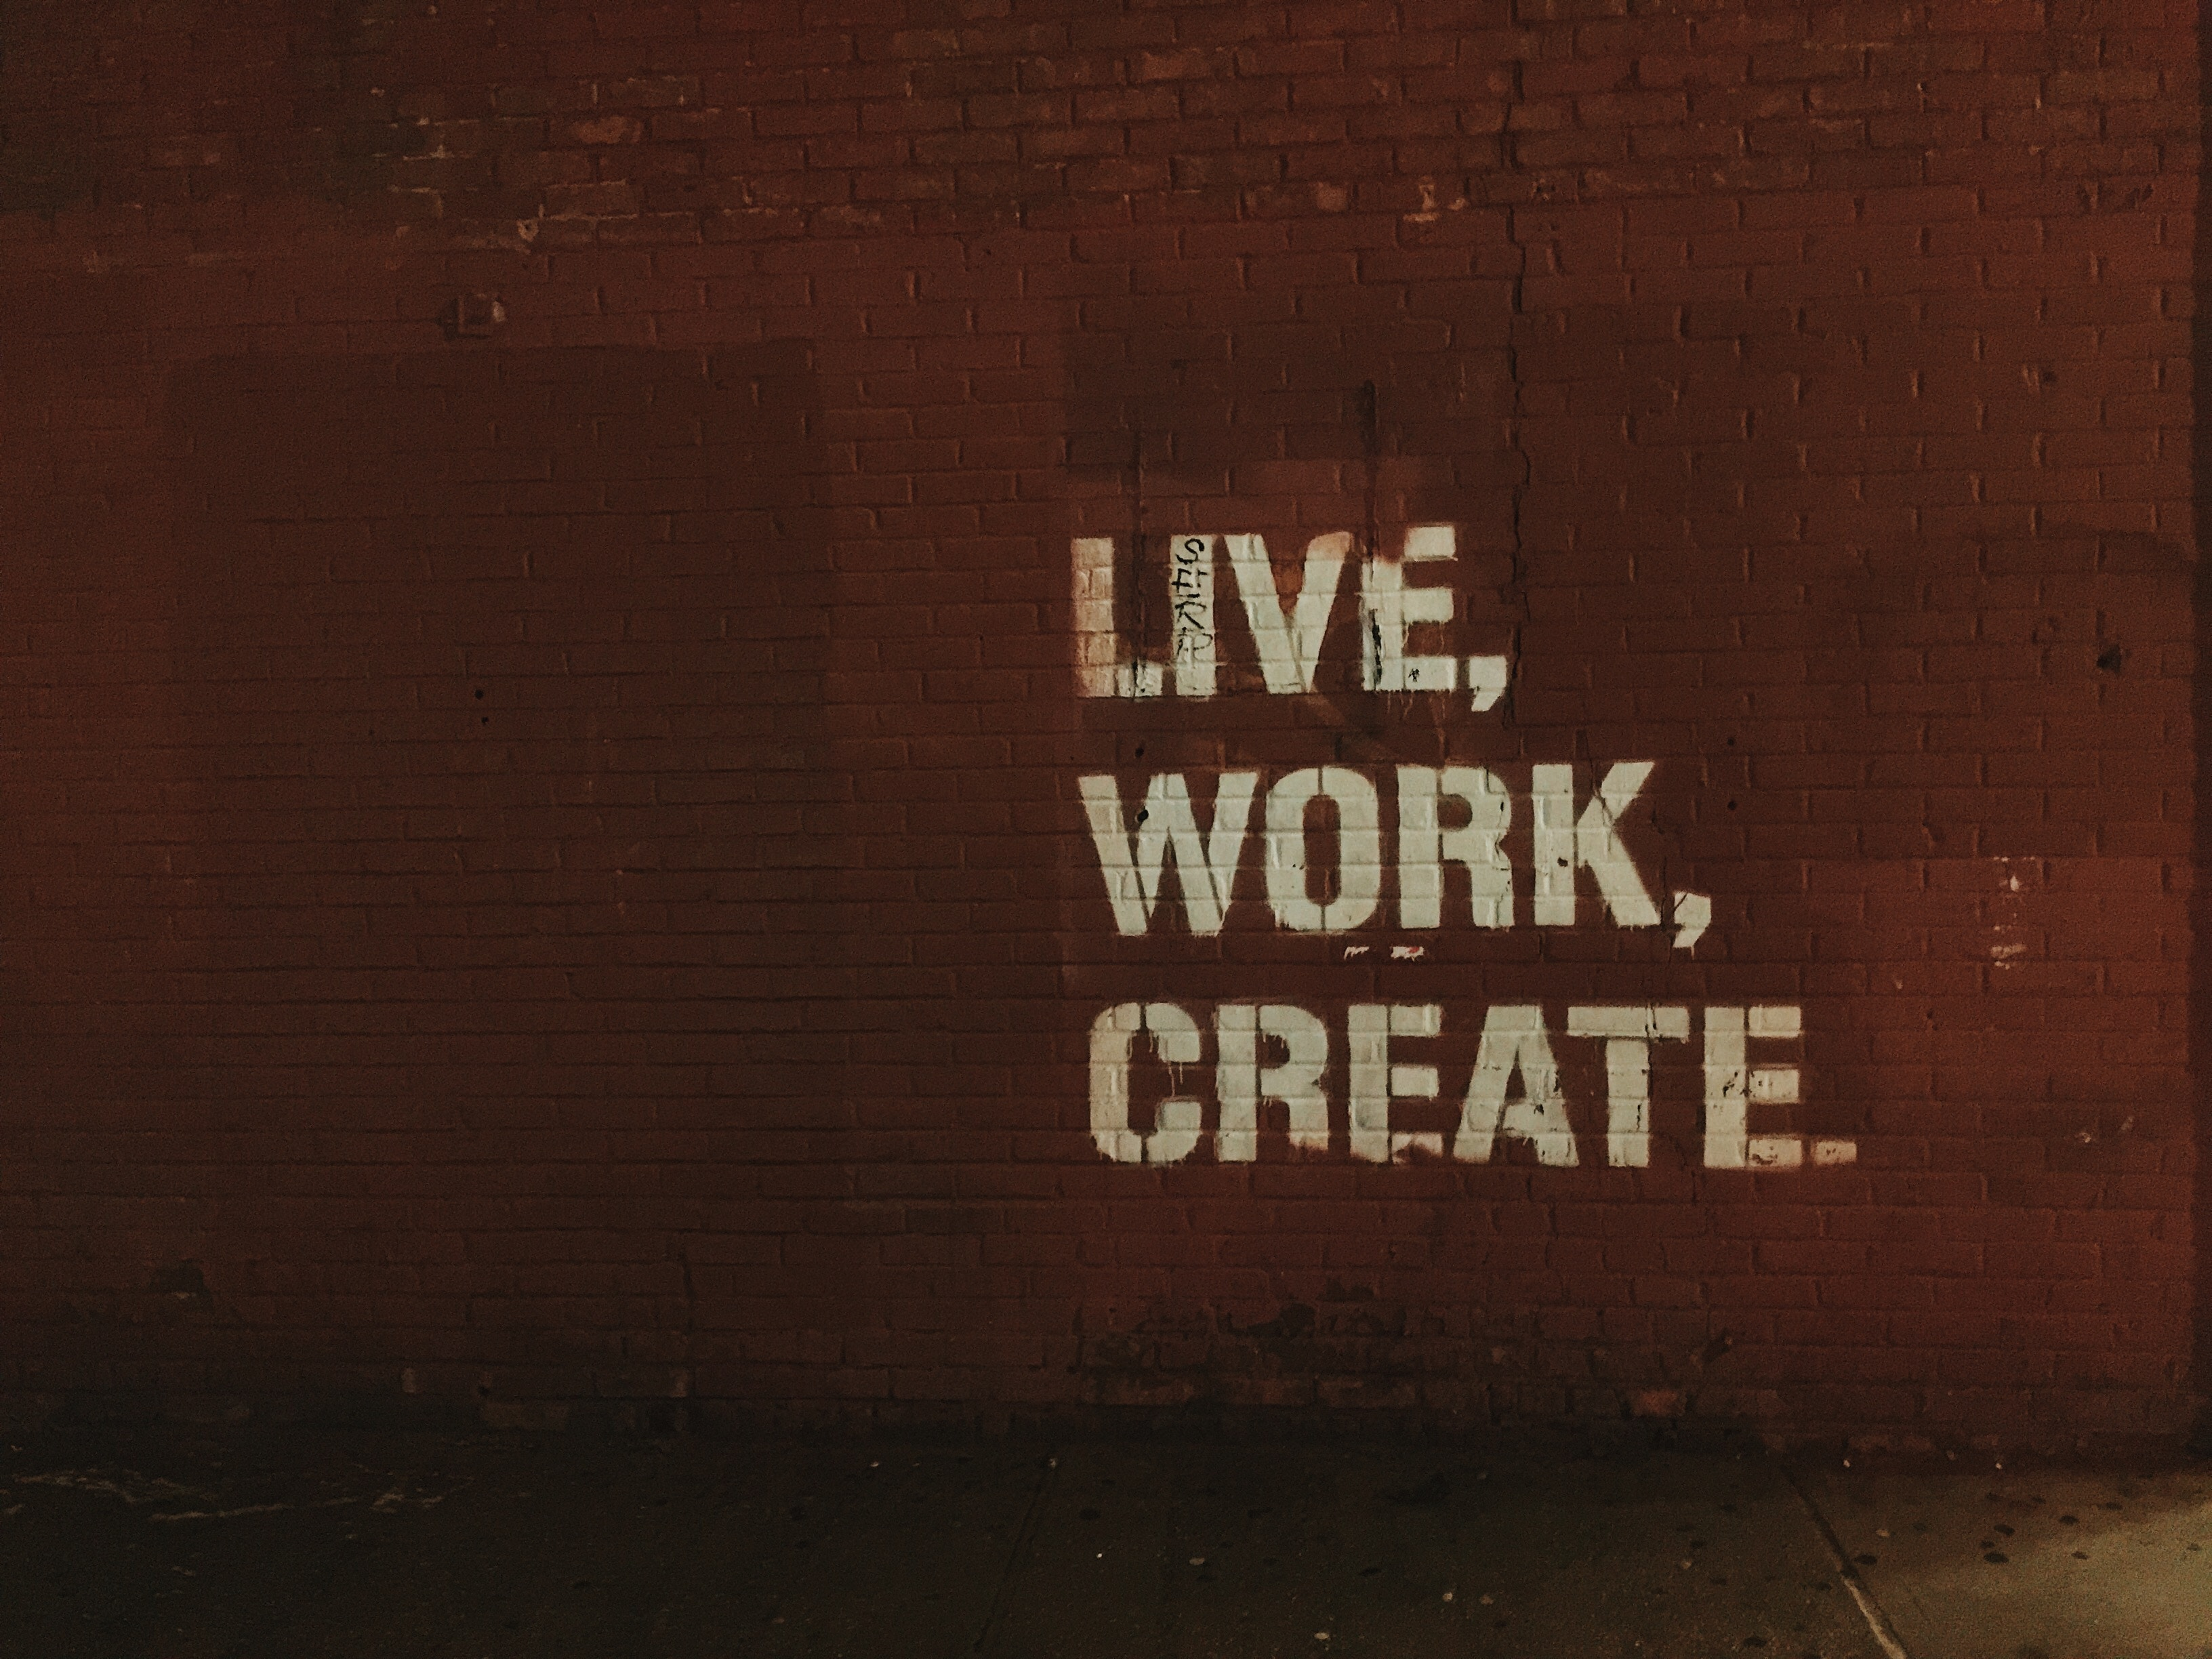 Photo by Jon Tyson on Unsplash